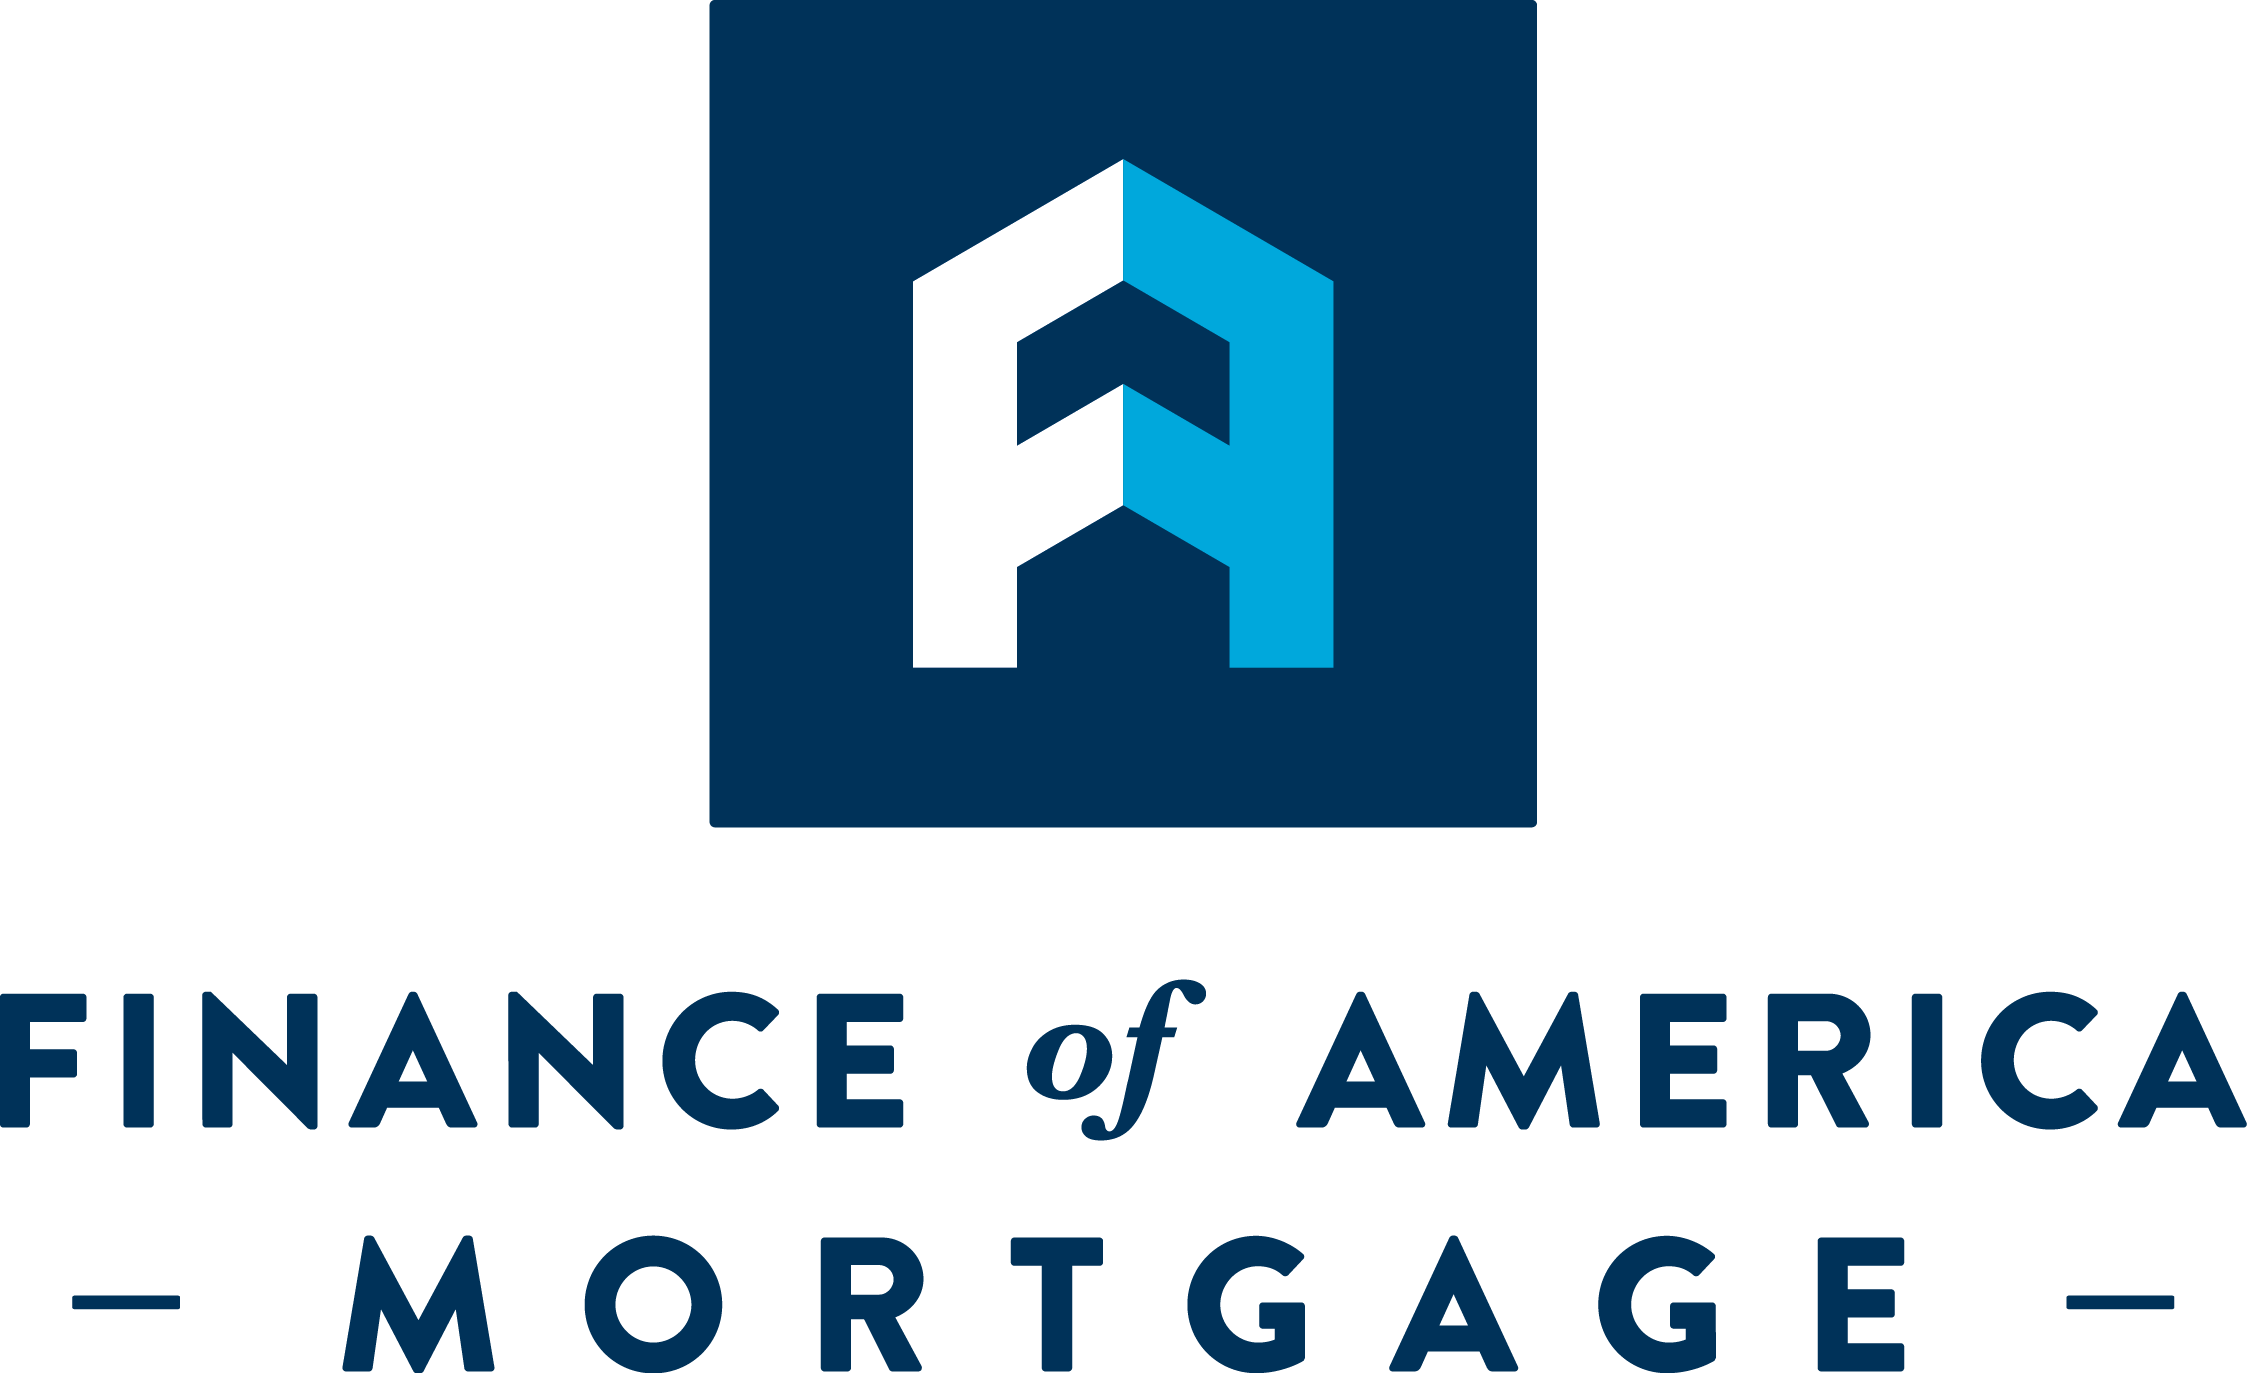 America Mortgage Group 3